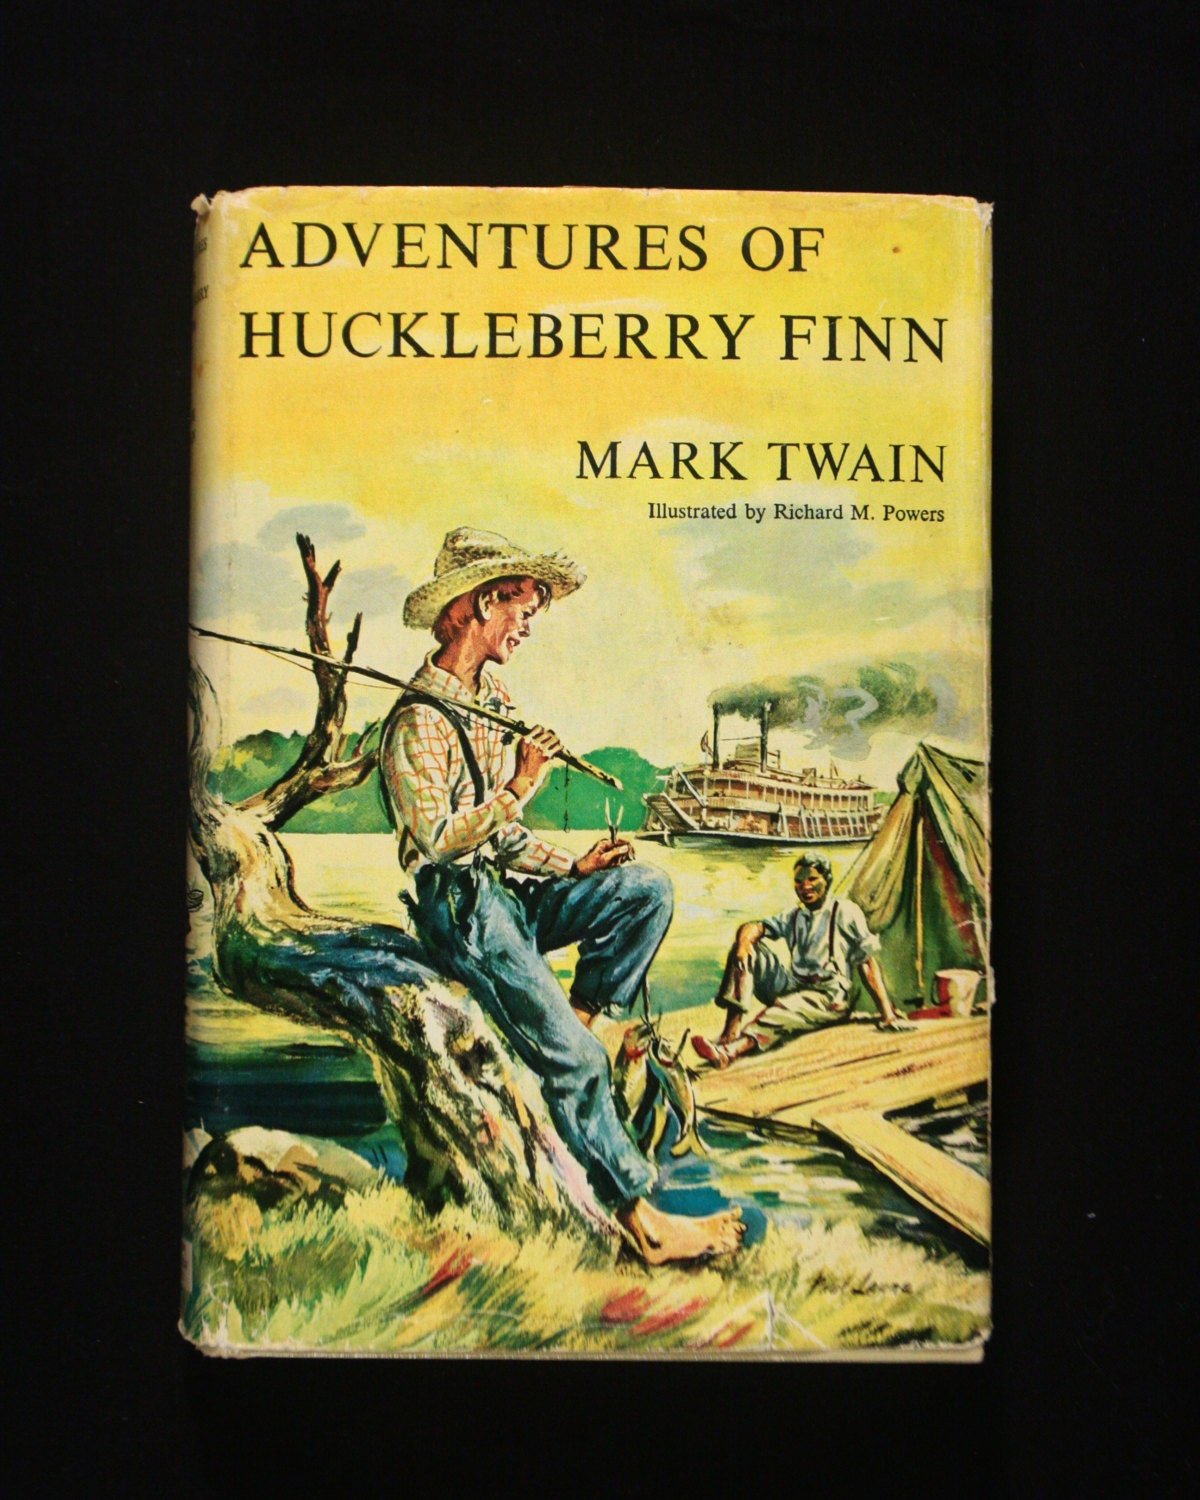 a historical analysis of huckleberry finn by mark twain The adventures of huckleberry finn has 1,041,545 ratings and 13,246 reviews the adventures of huckleberry finn, mark twain historical-fiction.